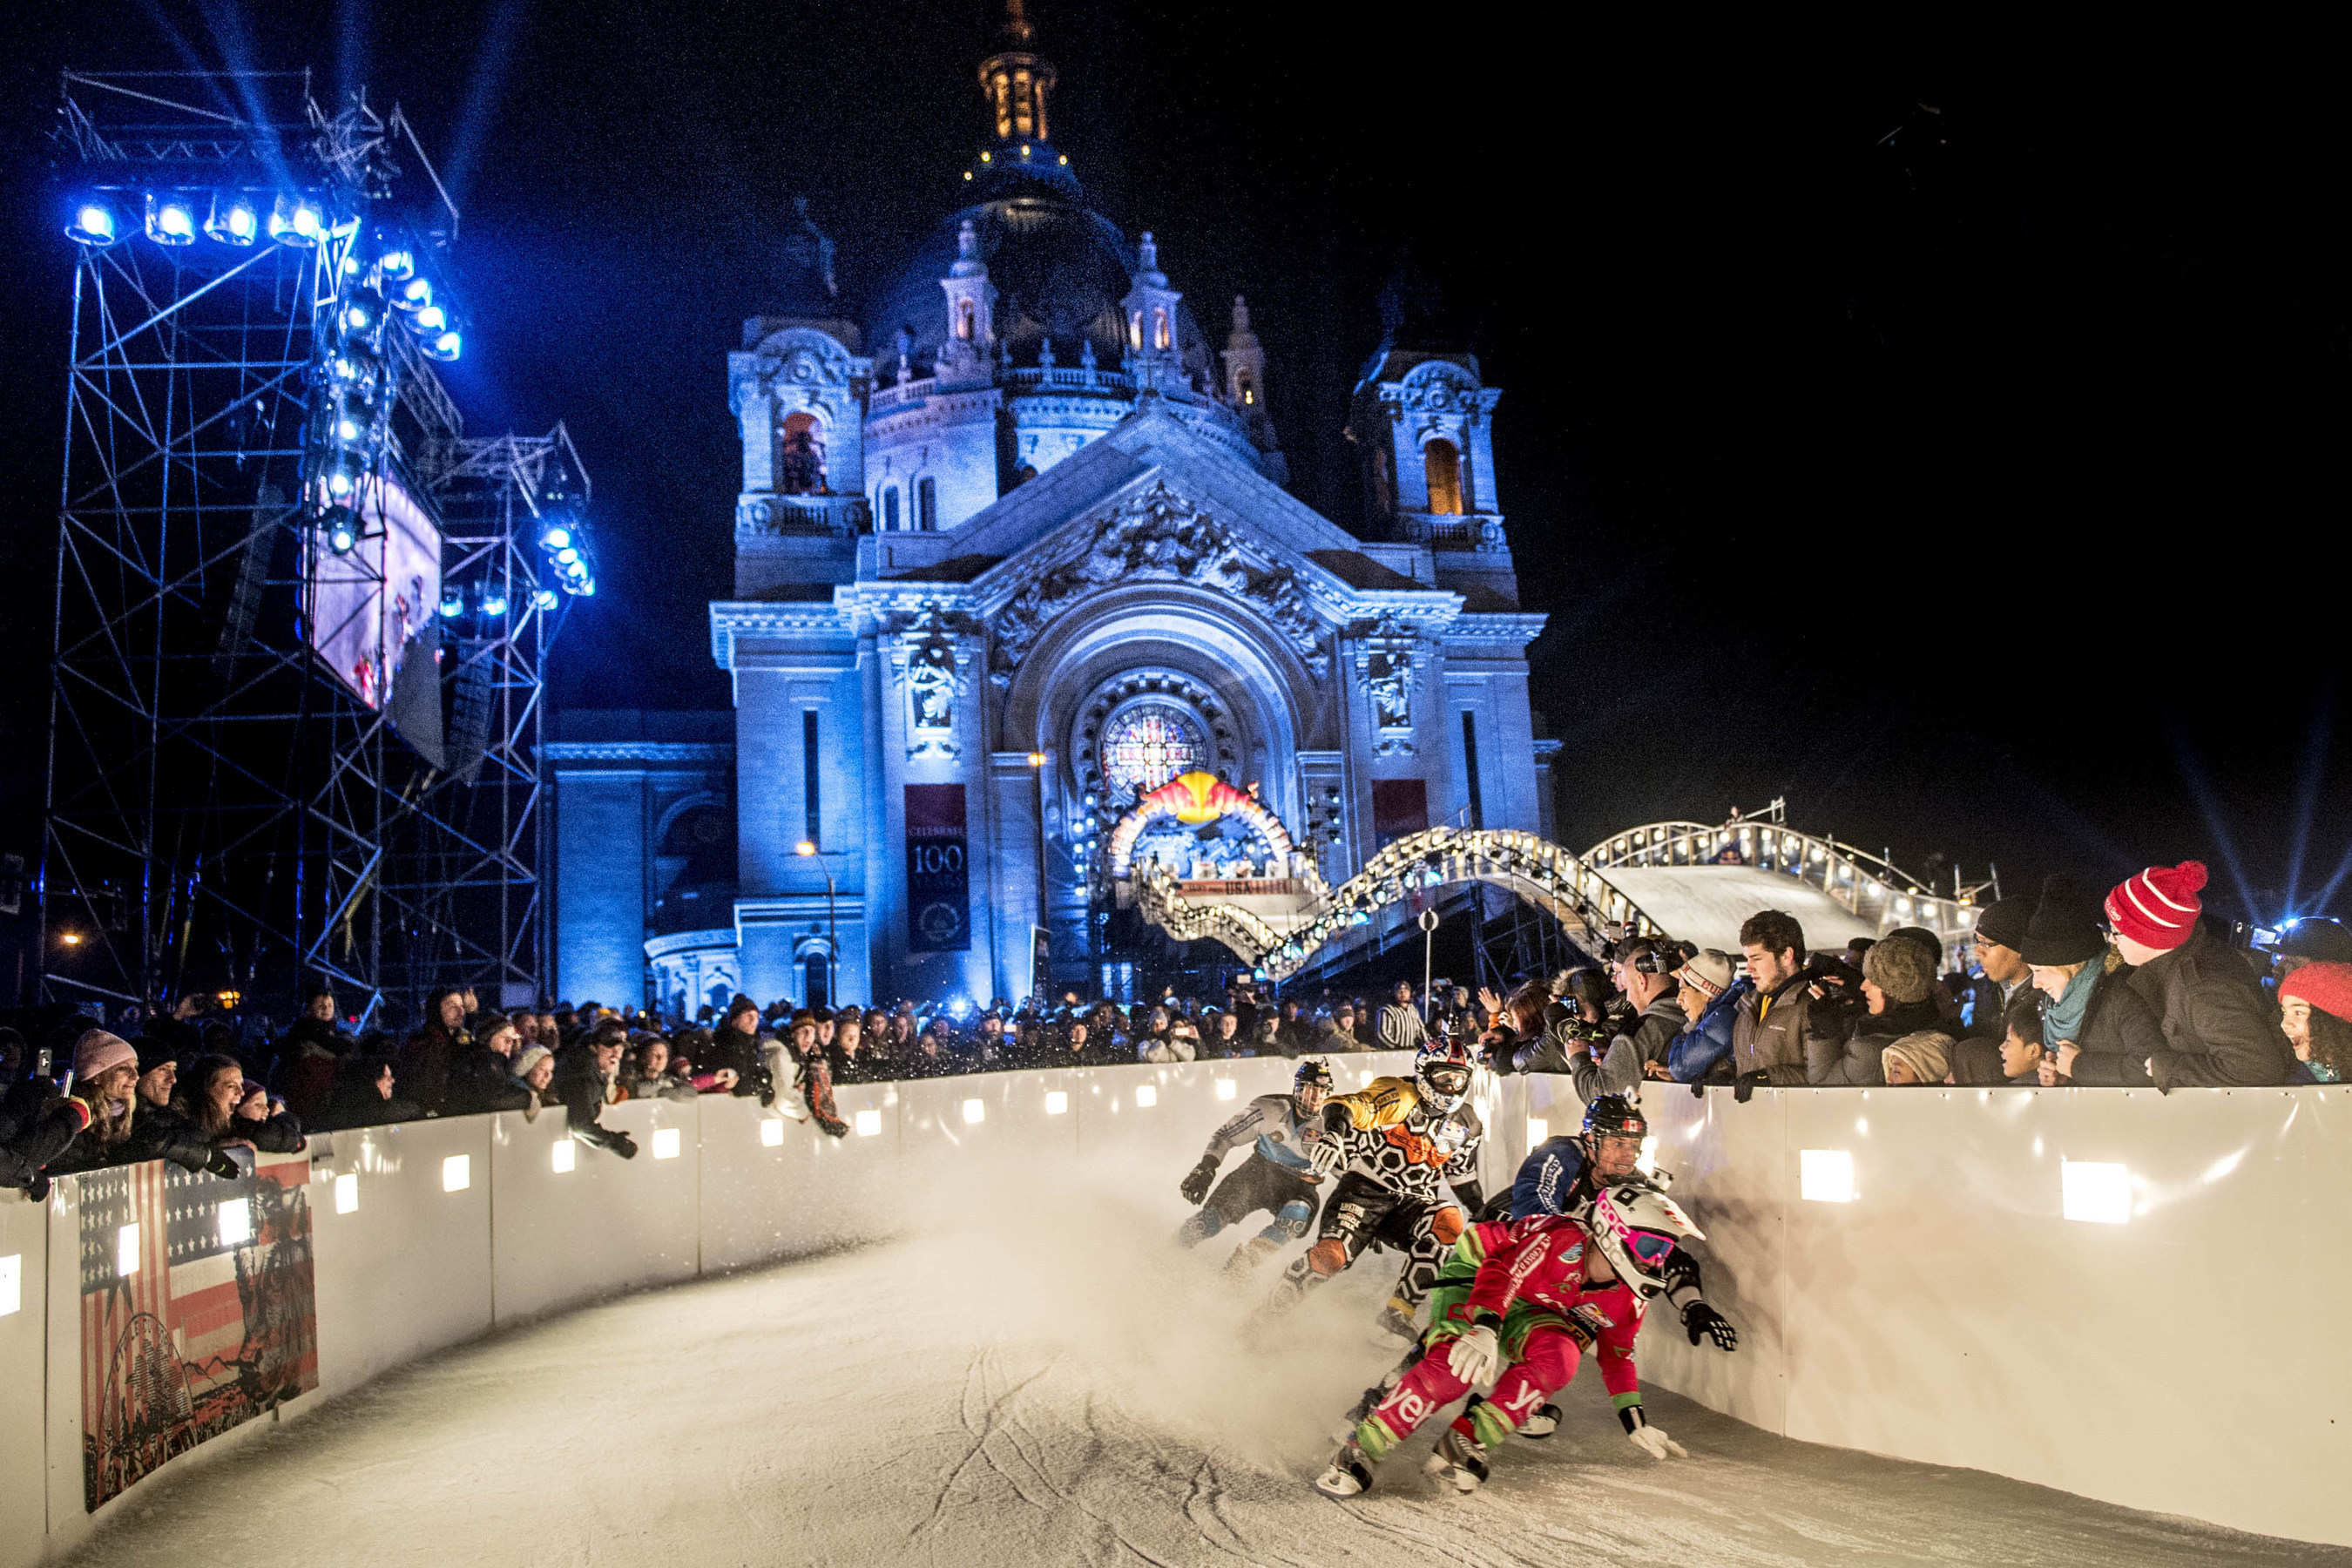 Riders fight for victory at Red Bull Crashed Ice Saint Paul 2015.